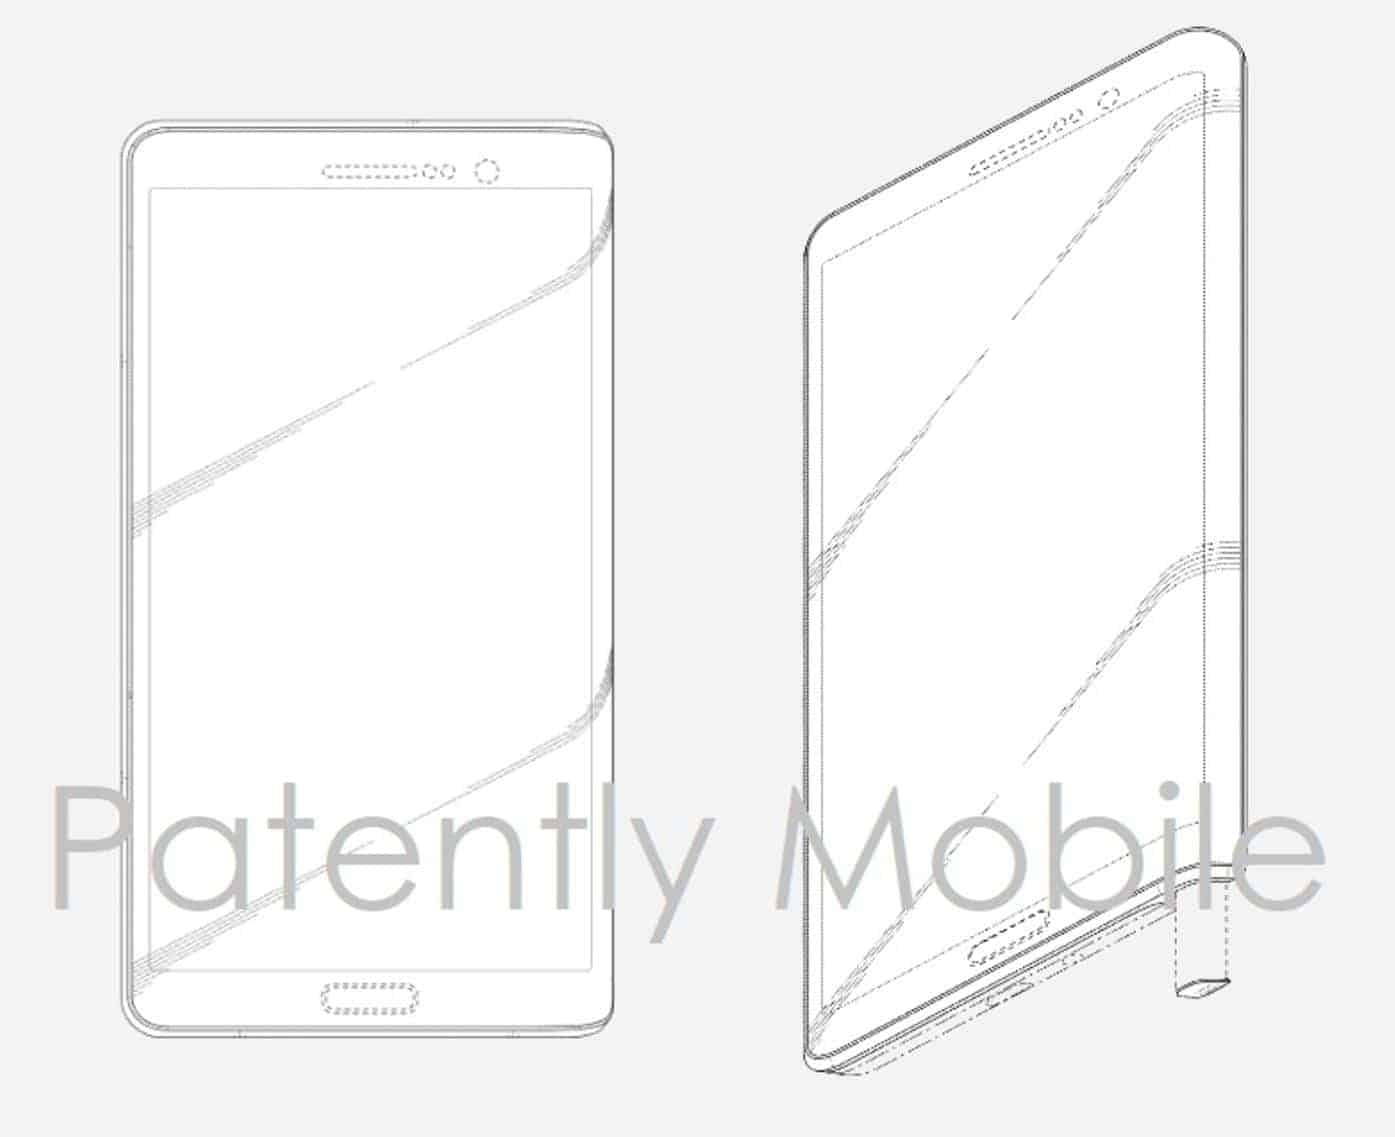 Samsung Patent Note 2